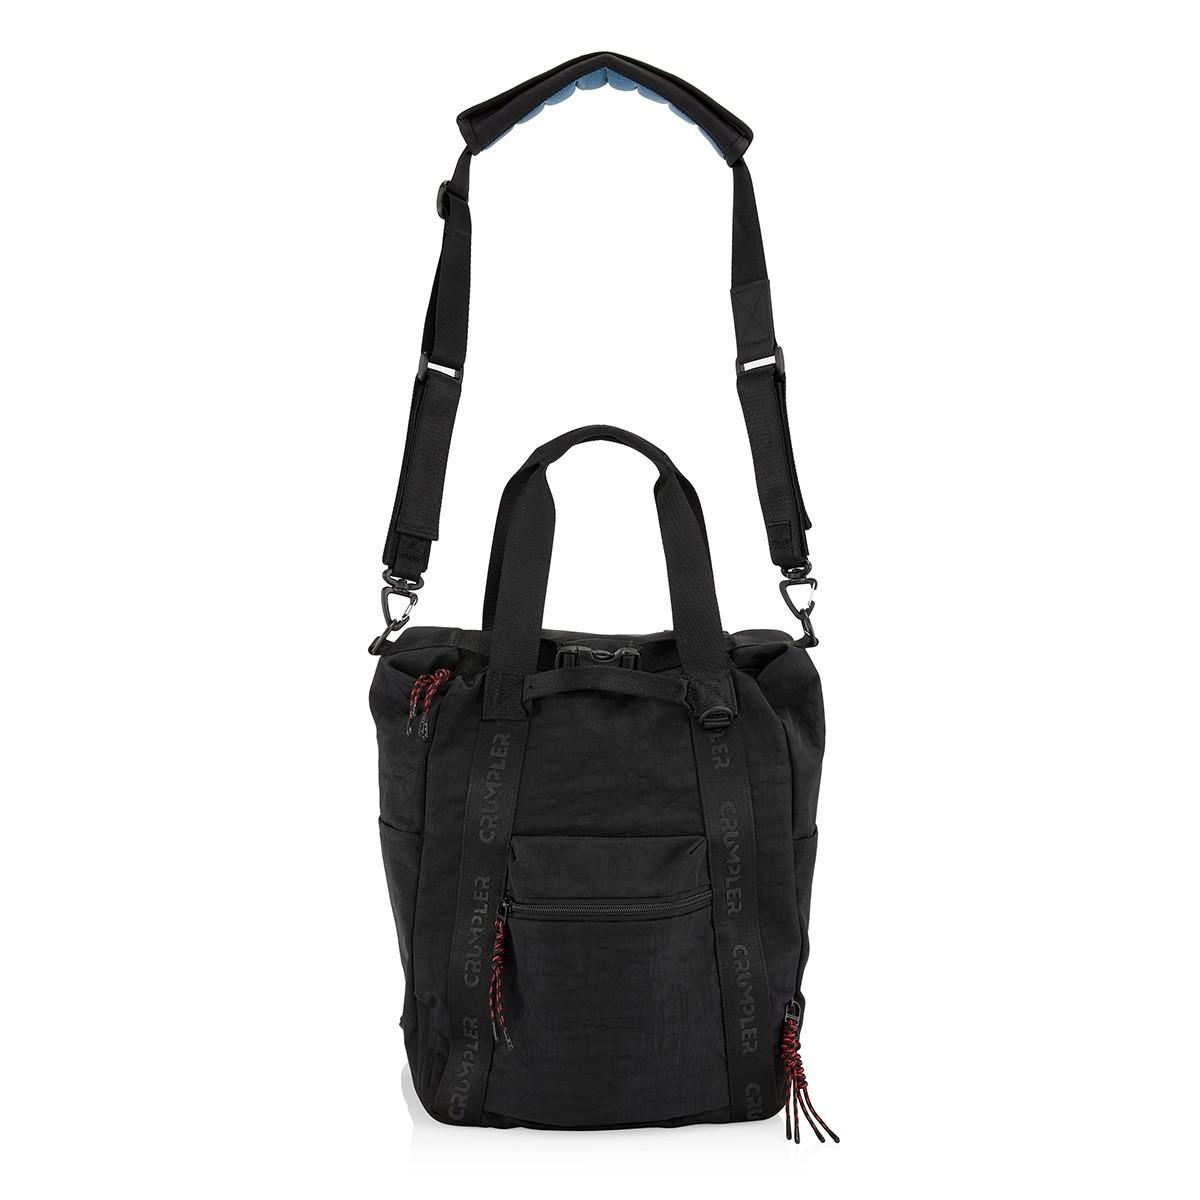 hot-selling agreatvarietyofmodels premium selection Buy crumpler Top Products Online | lazada.sg